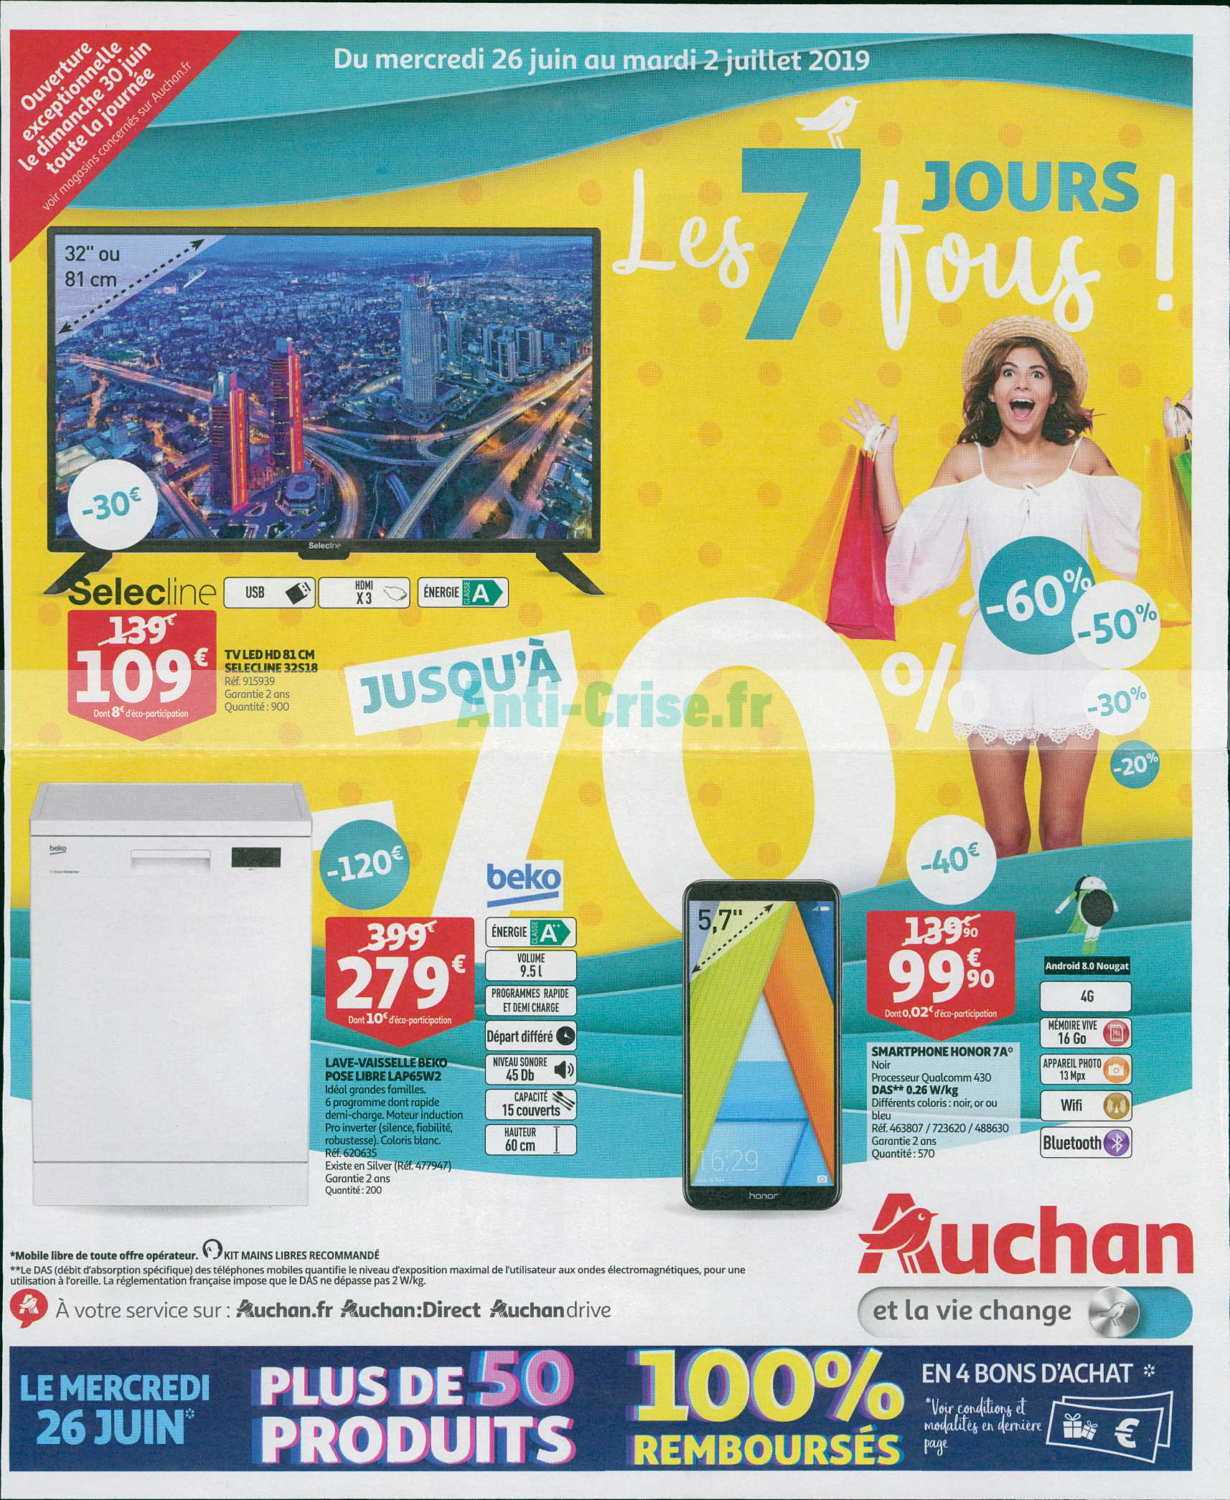 Catalogue Auchan 26 Juin 2019 : catalogue, auchan, AUCHAN, Nouveau, Catalogue, Juillet, Disponible!, Ratez, Promos, Catalogue.